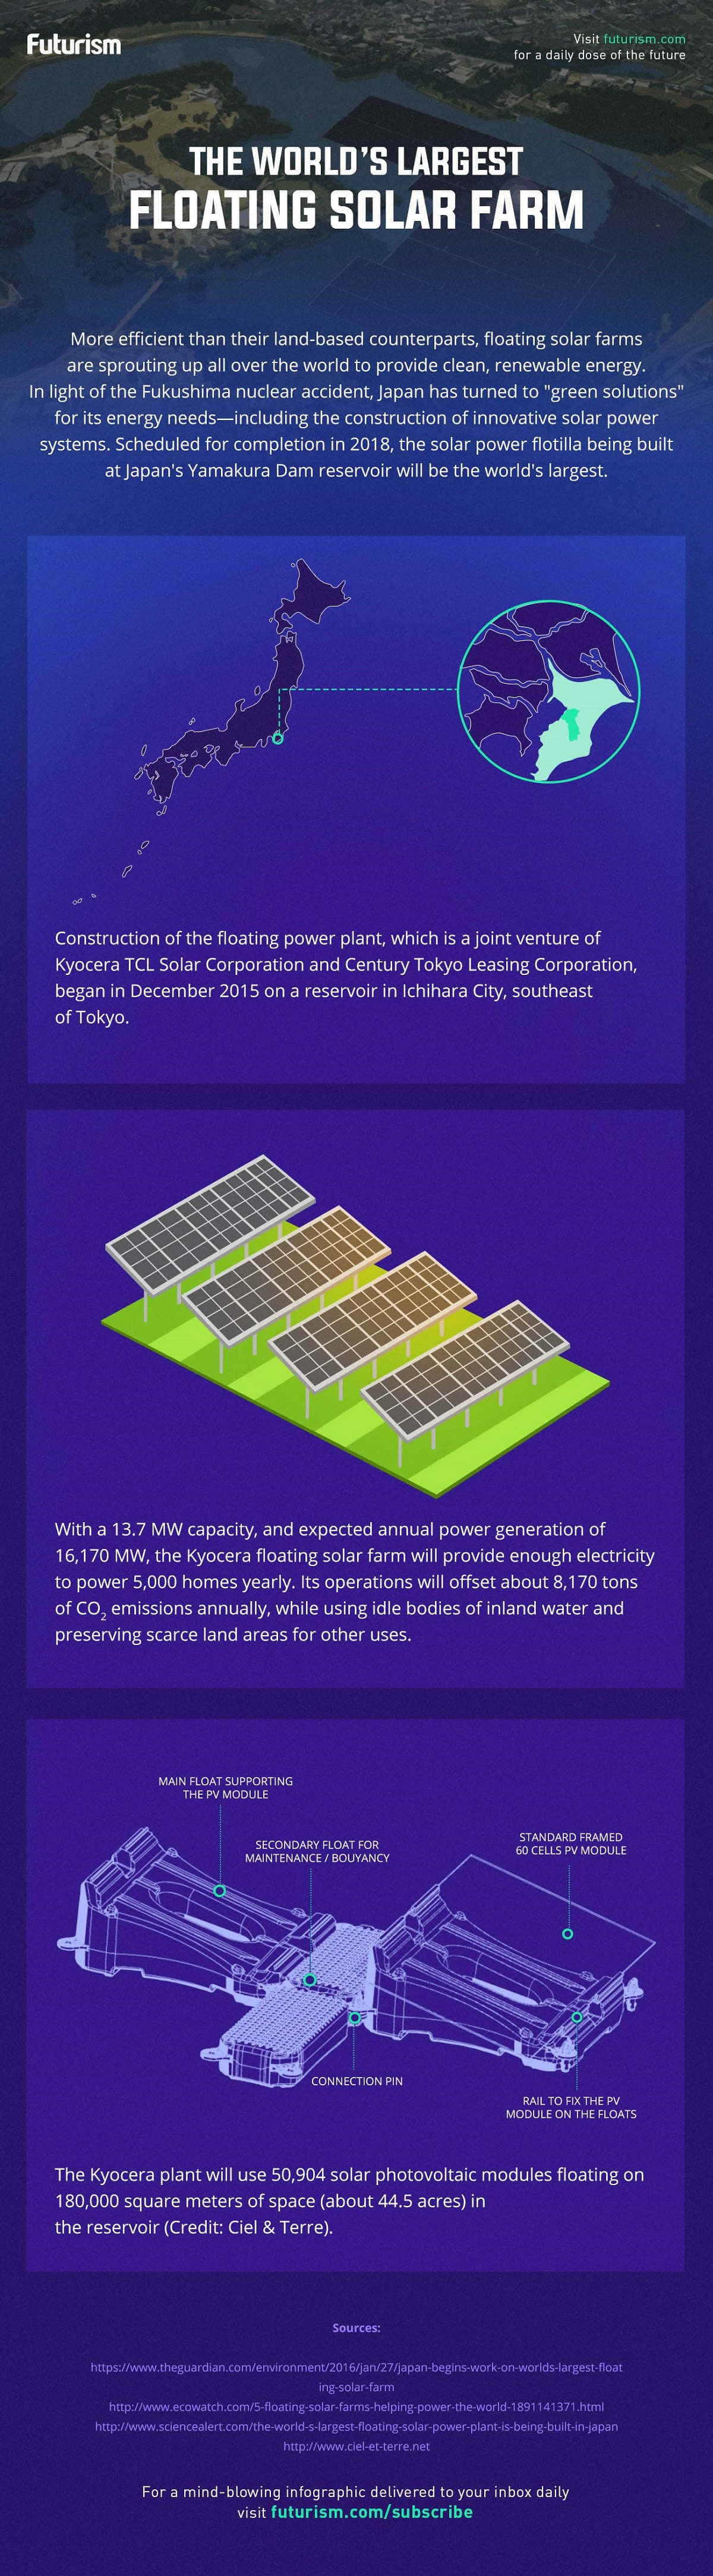 The World's Largest Floating Solar Farm